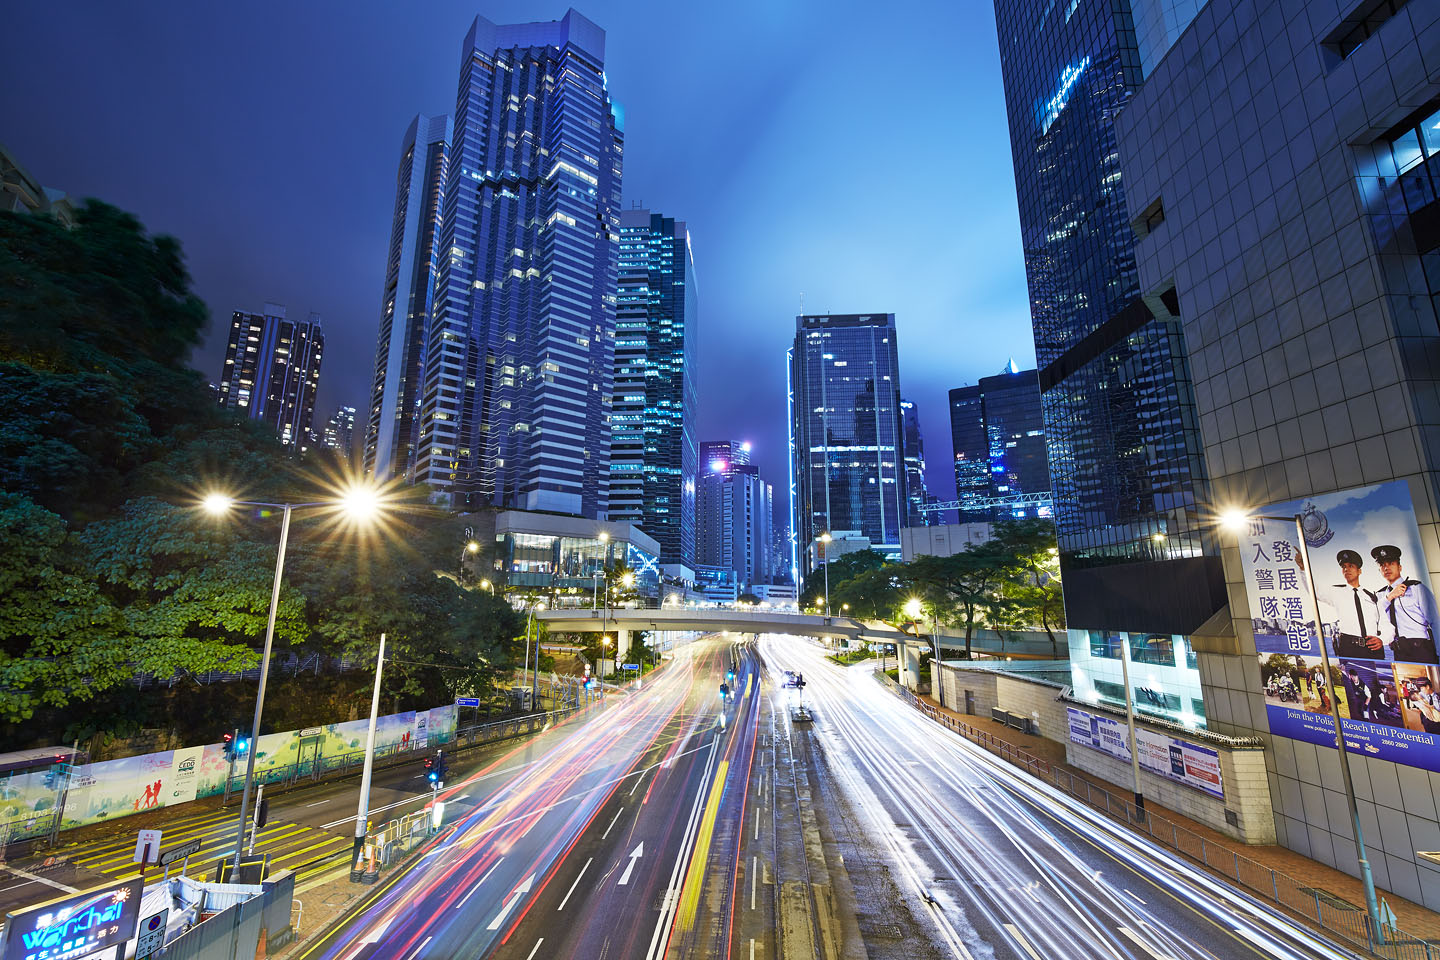 From Wanchai to Central